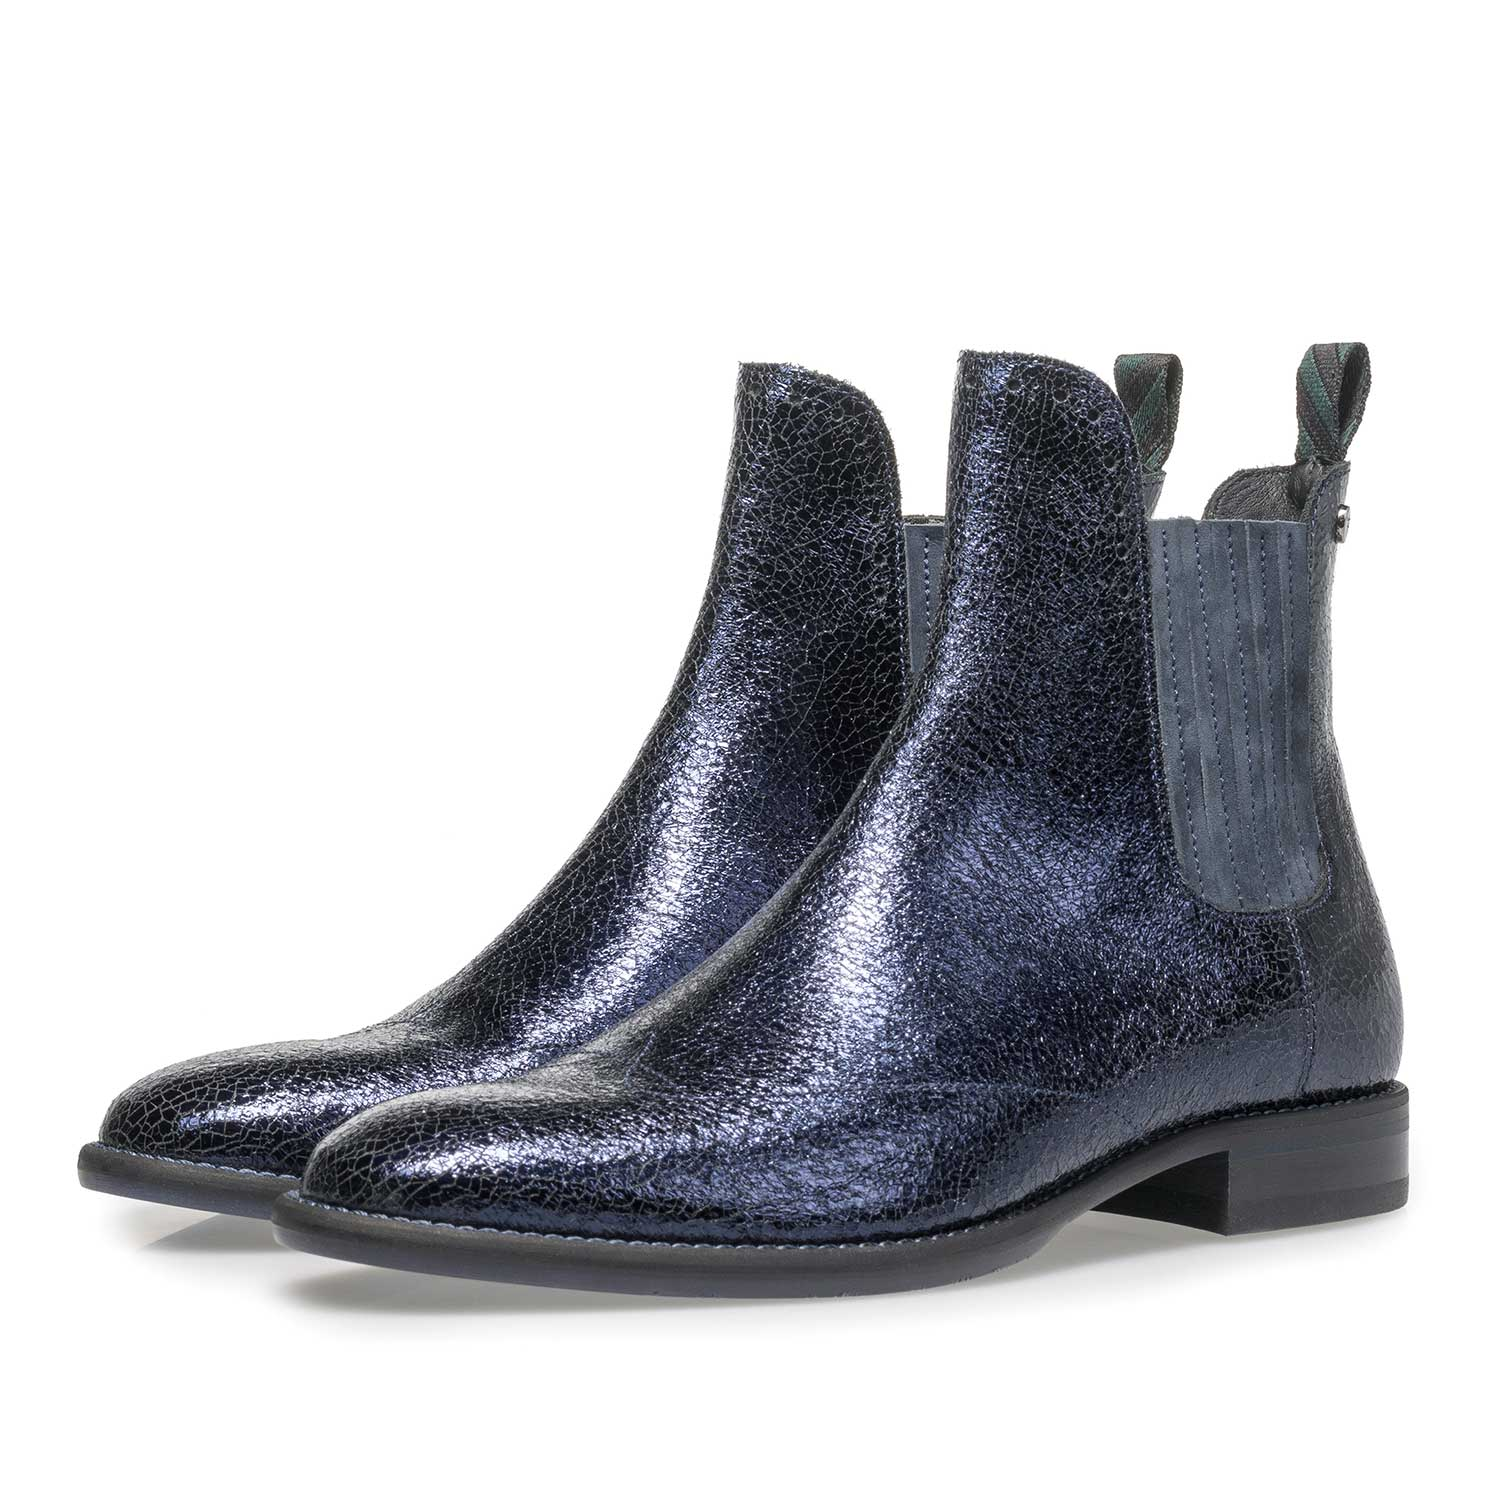 85601/03 - Dark blue leather Chelsea boot with metallic print